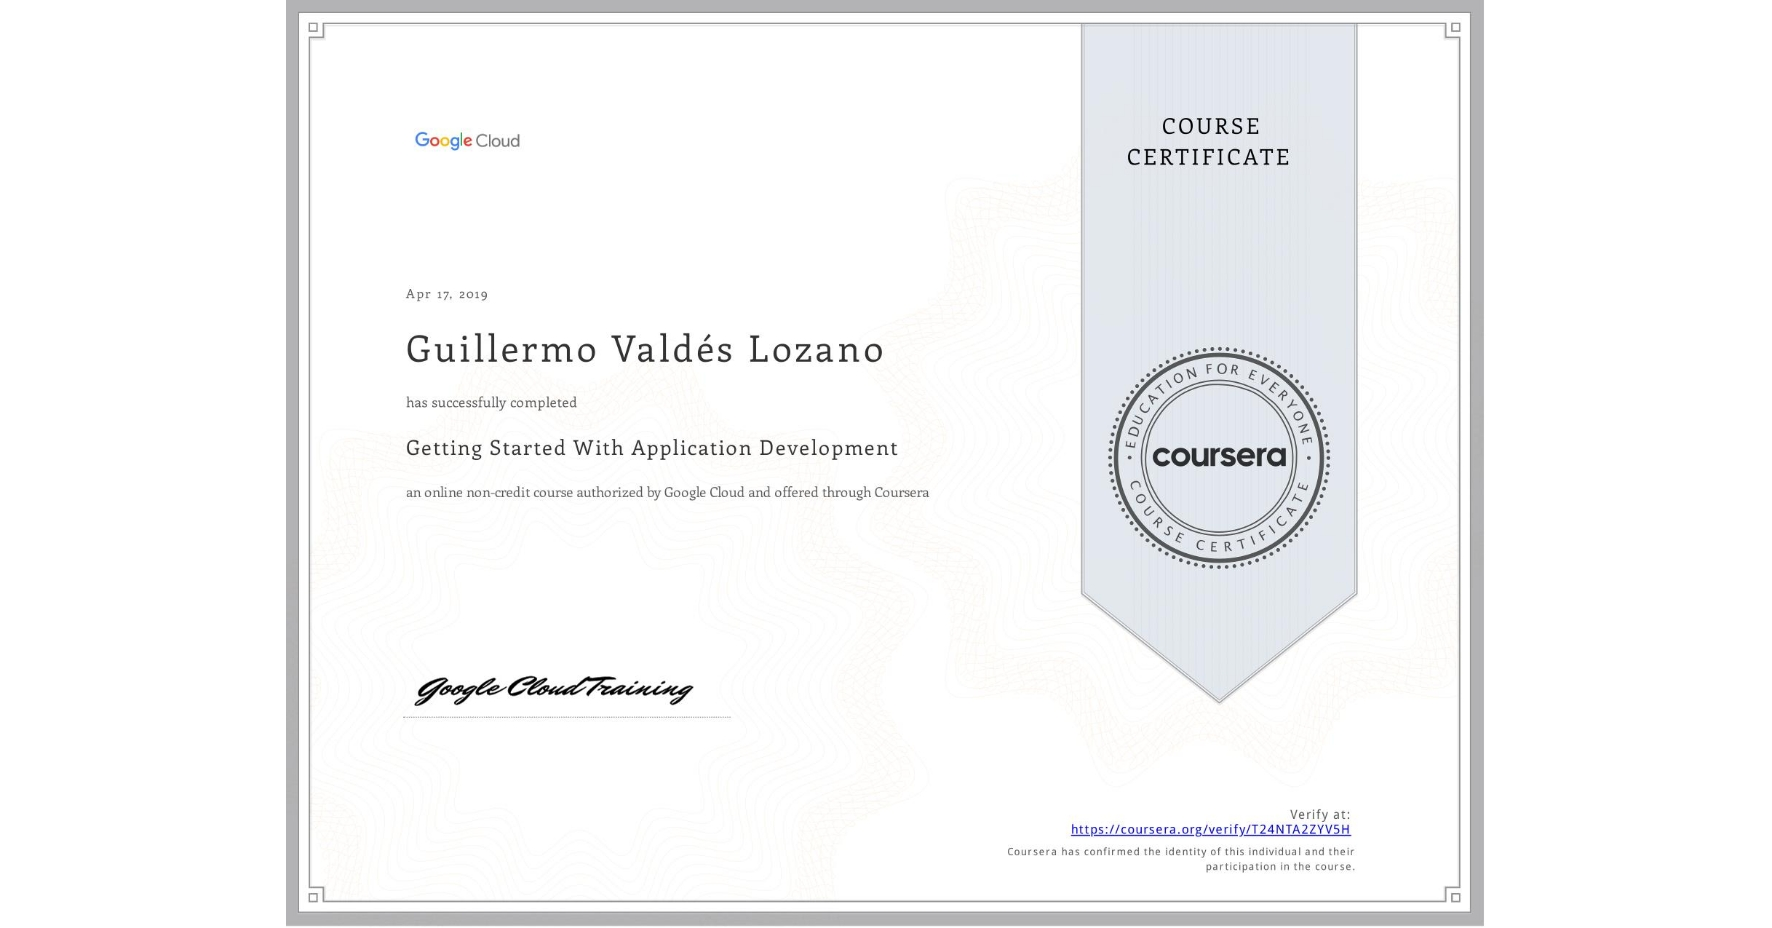 View certificate for Guillermo Valdés Lozano, Getting Started With Application Development, an online non-credit course authorized by Google Cloud and offered through Coursera